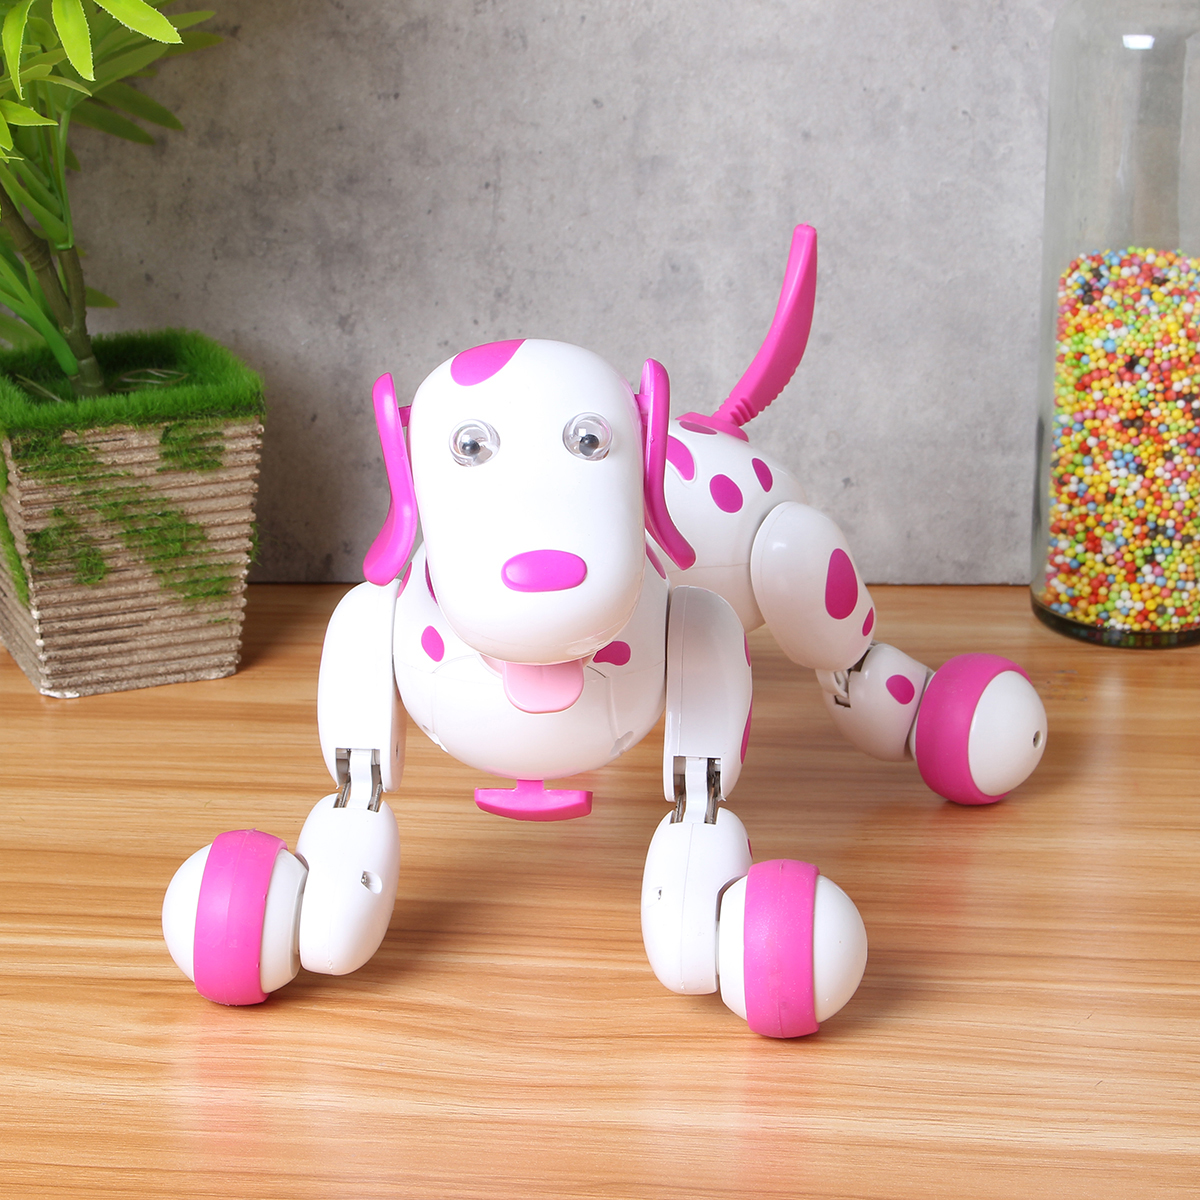 Pink 2.4G RC Smart Dance Walking Remote Control Robot Dog Electronic Pet For Kid Toy